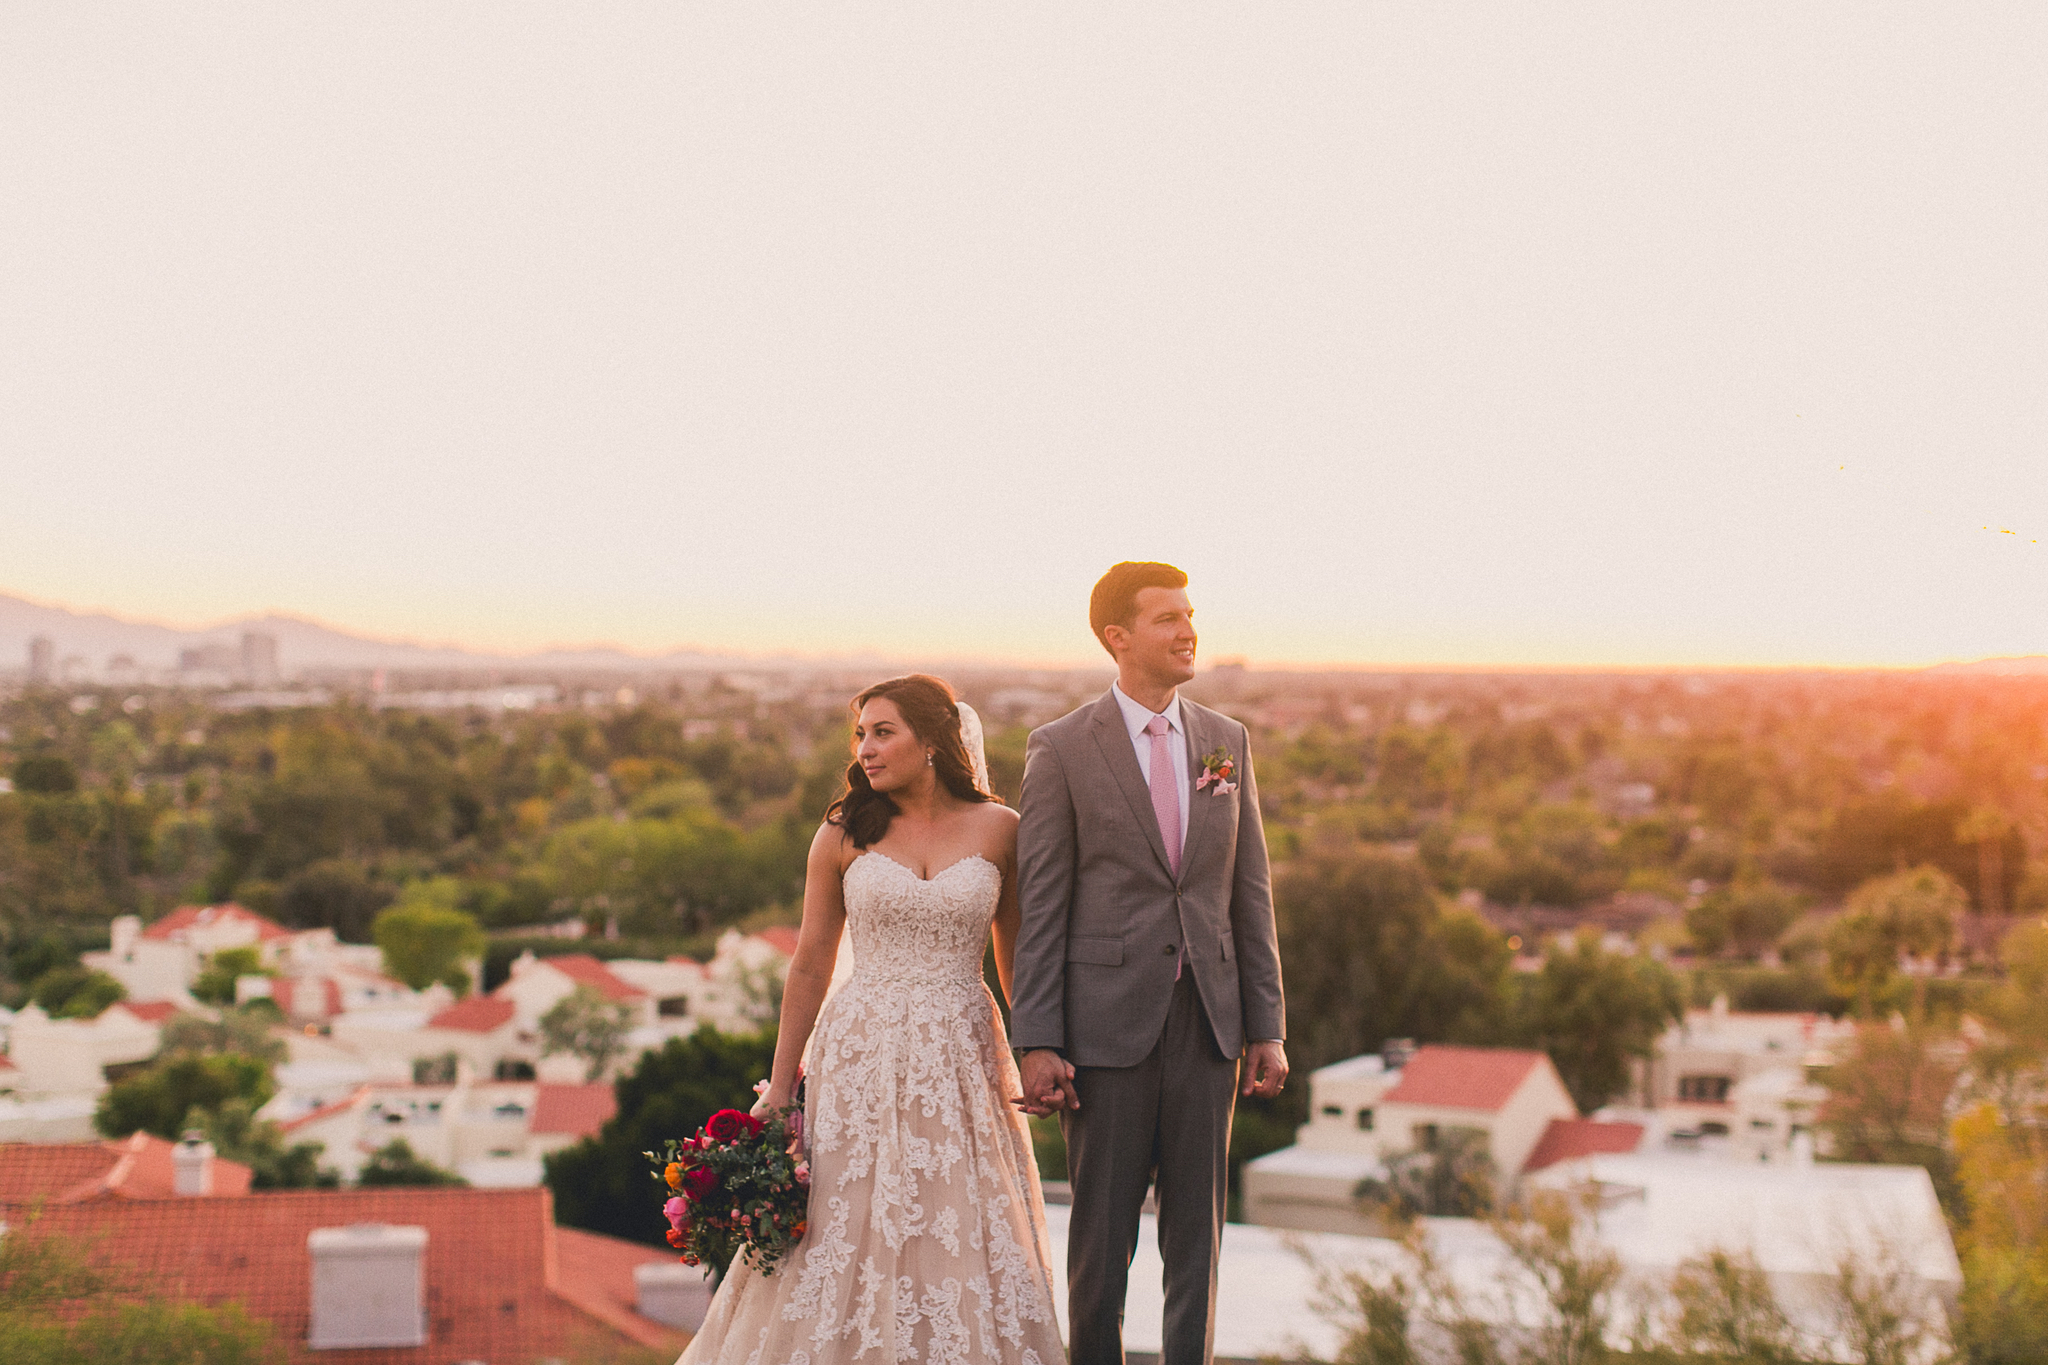 Colorful Springtime Wedding at Wrigley Mansion - Sunset Portraits